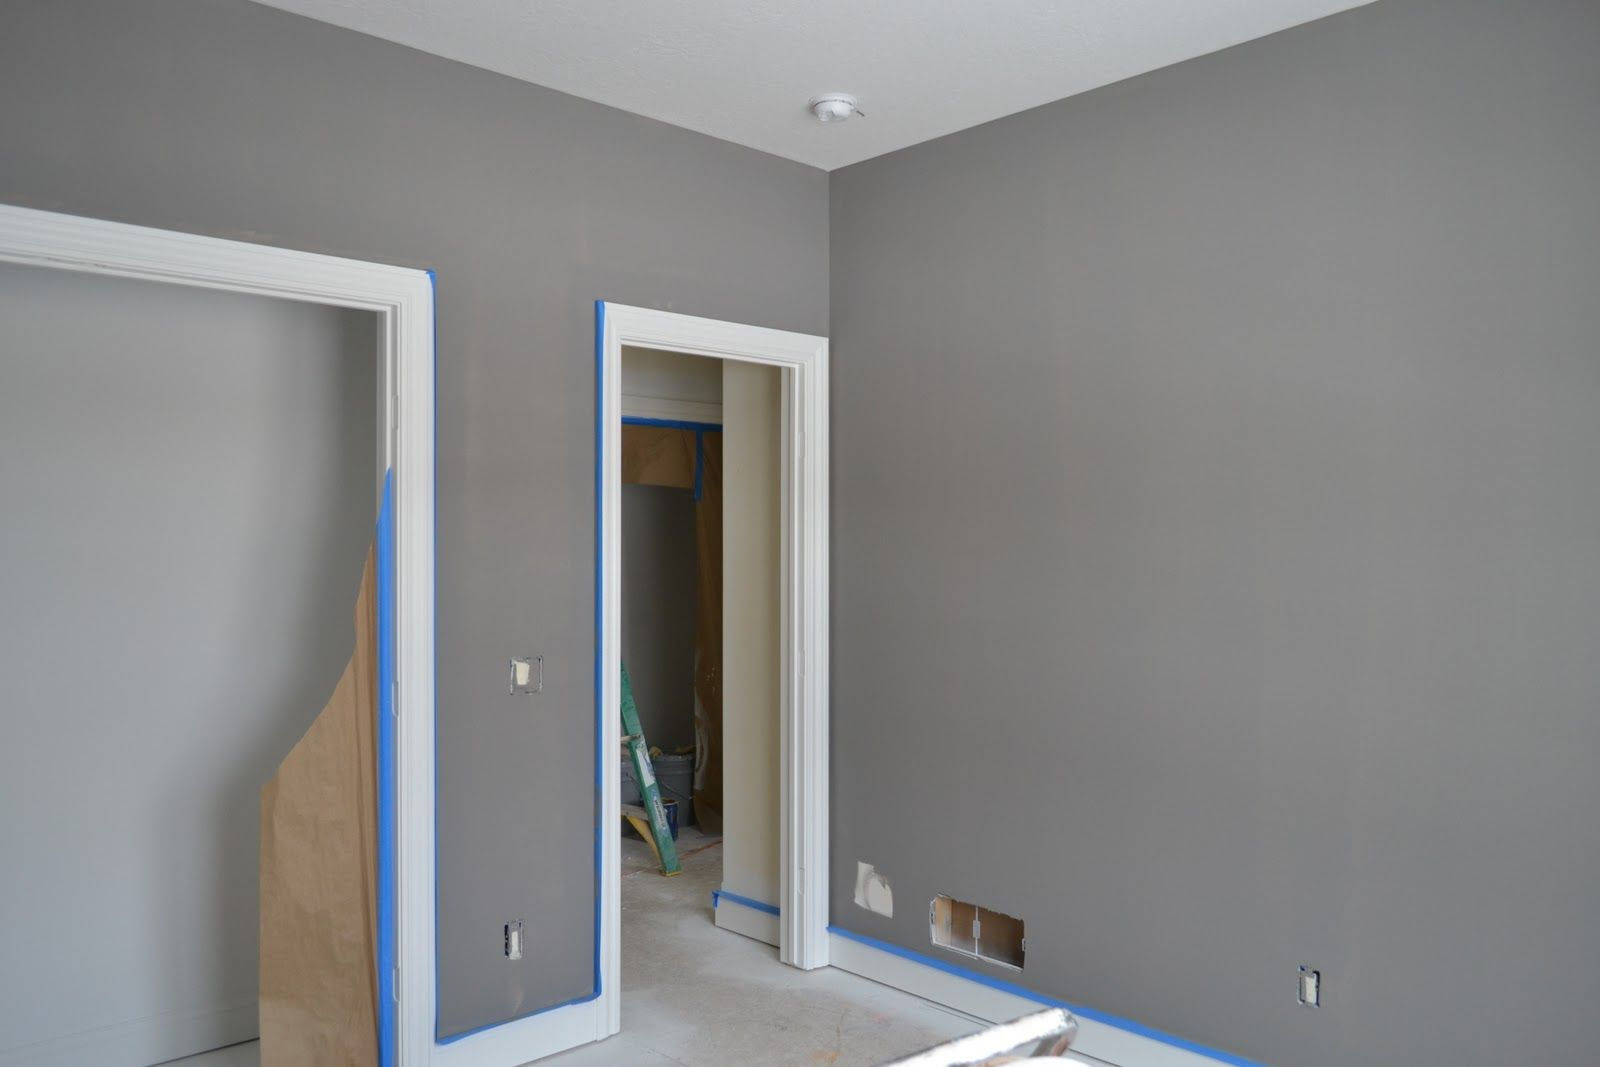 Master bedroom grey paint ideas  Dovetail Sherwin Williams  Master bedroom  Pinterest  Home Paint